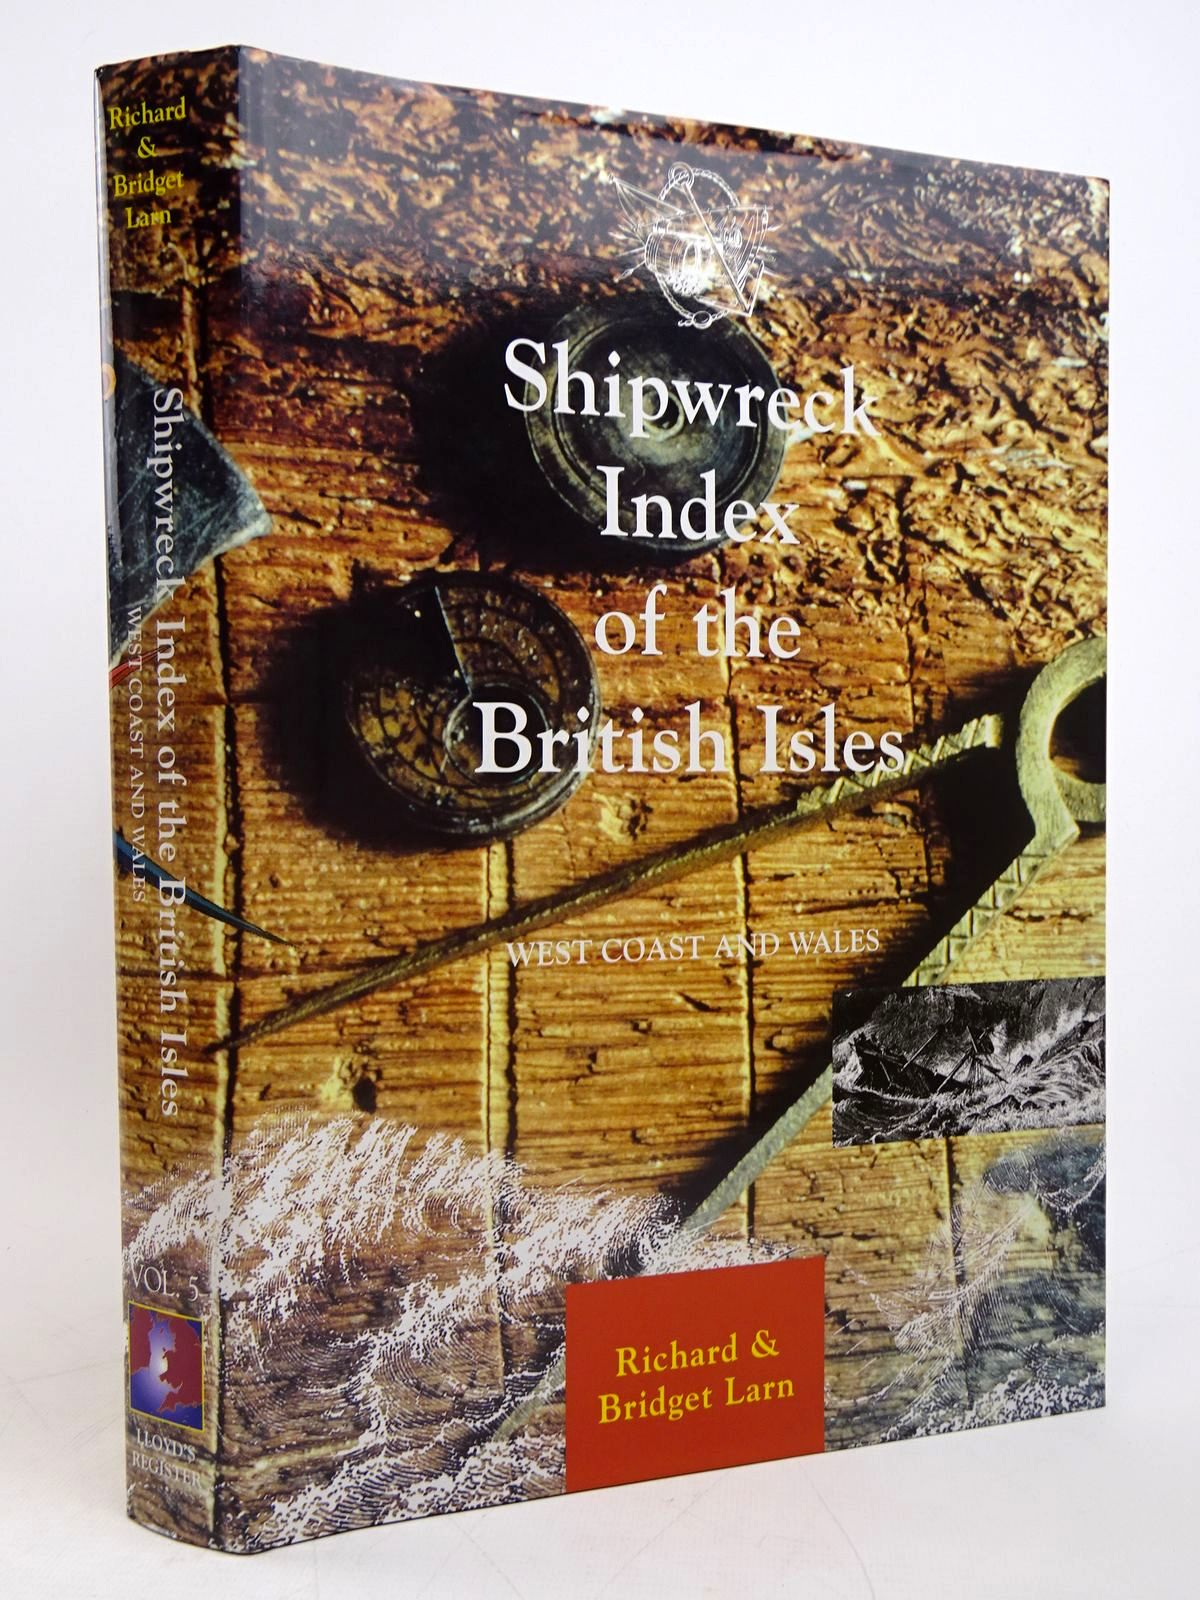 Photo of SHIPWRECK INDEX OF THE BRITISH ISLES VOLUME 5 - WEST COAST AND WALES